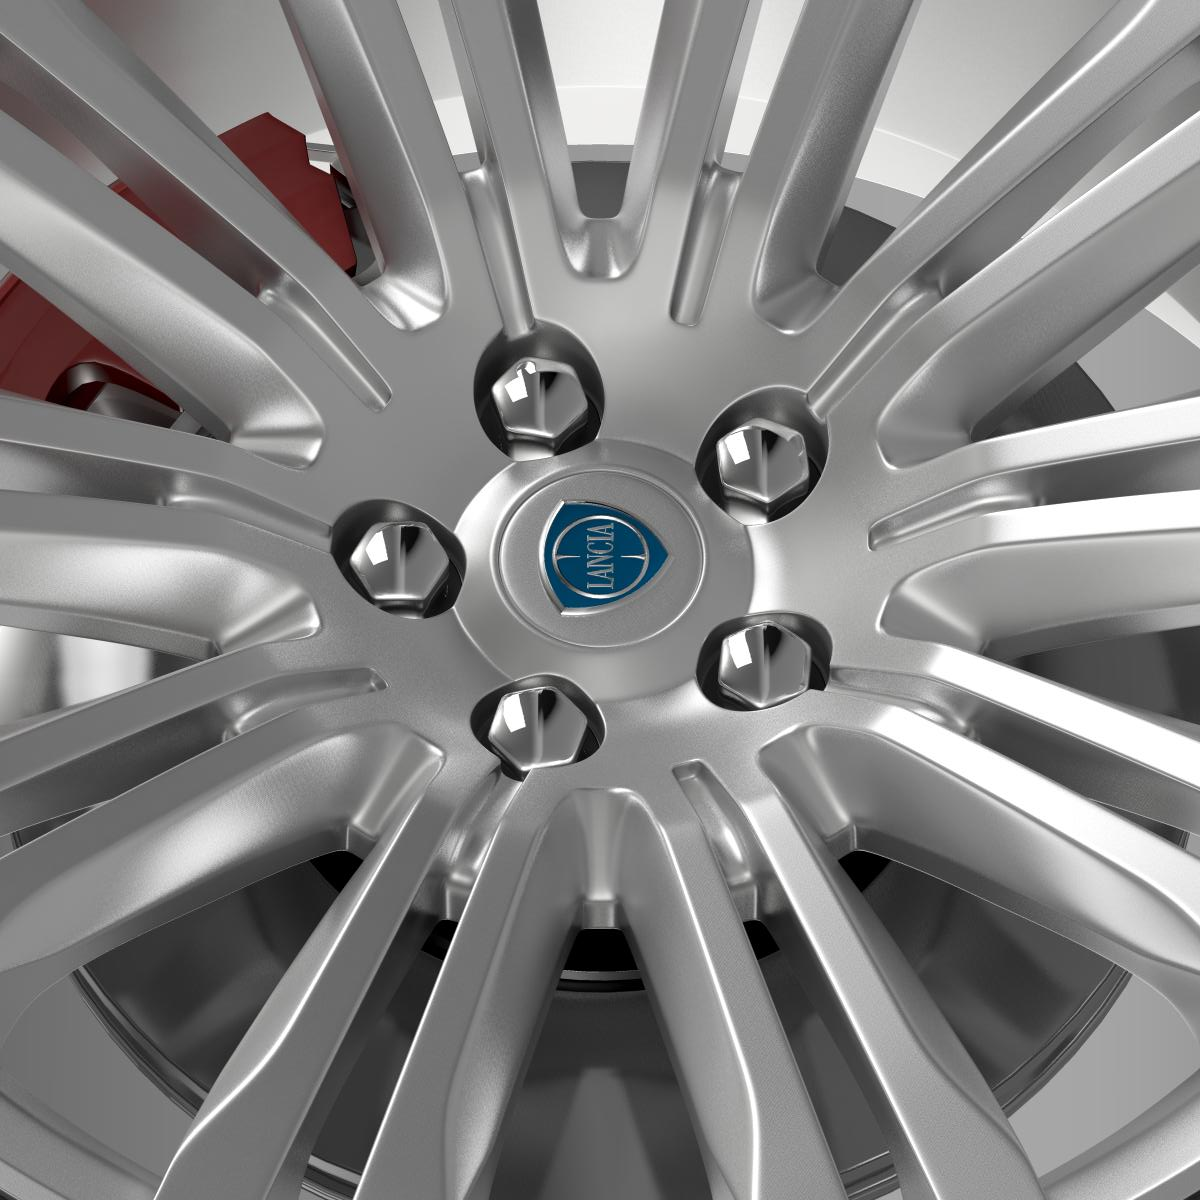 lancia thema 2014 wheel 3d model 3ds max fbx c4d lwo ma mb hrc xsi obj 210733